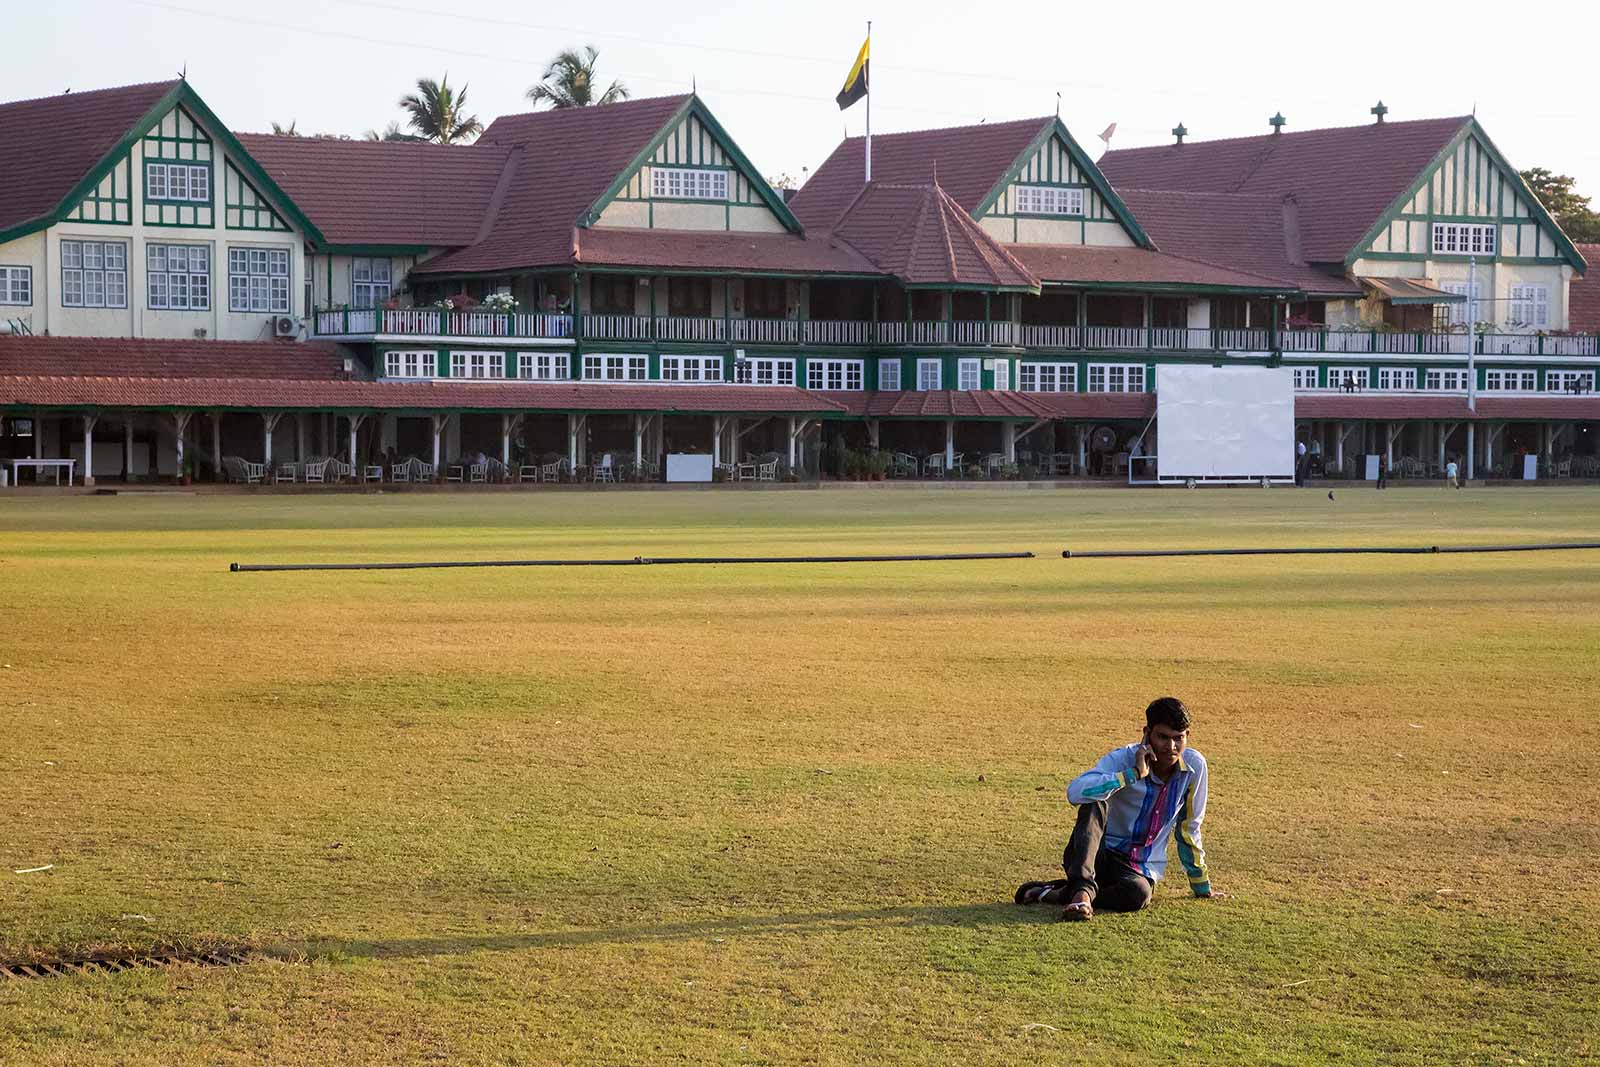 If you come at the right time and are lucky, you'll be able to experience Oval Maidan without crowds of people - which is very unusual for one of Indias busiest cities.